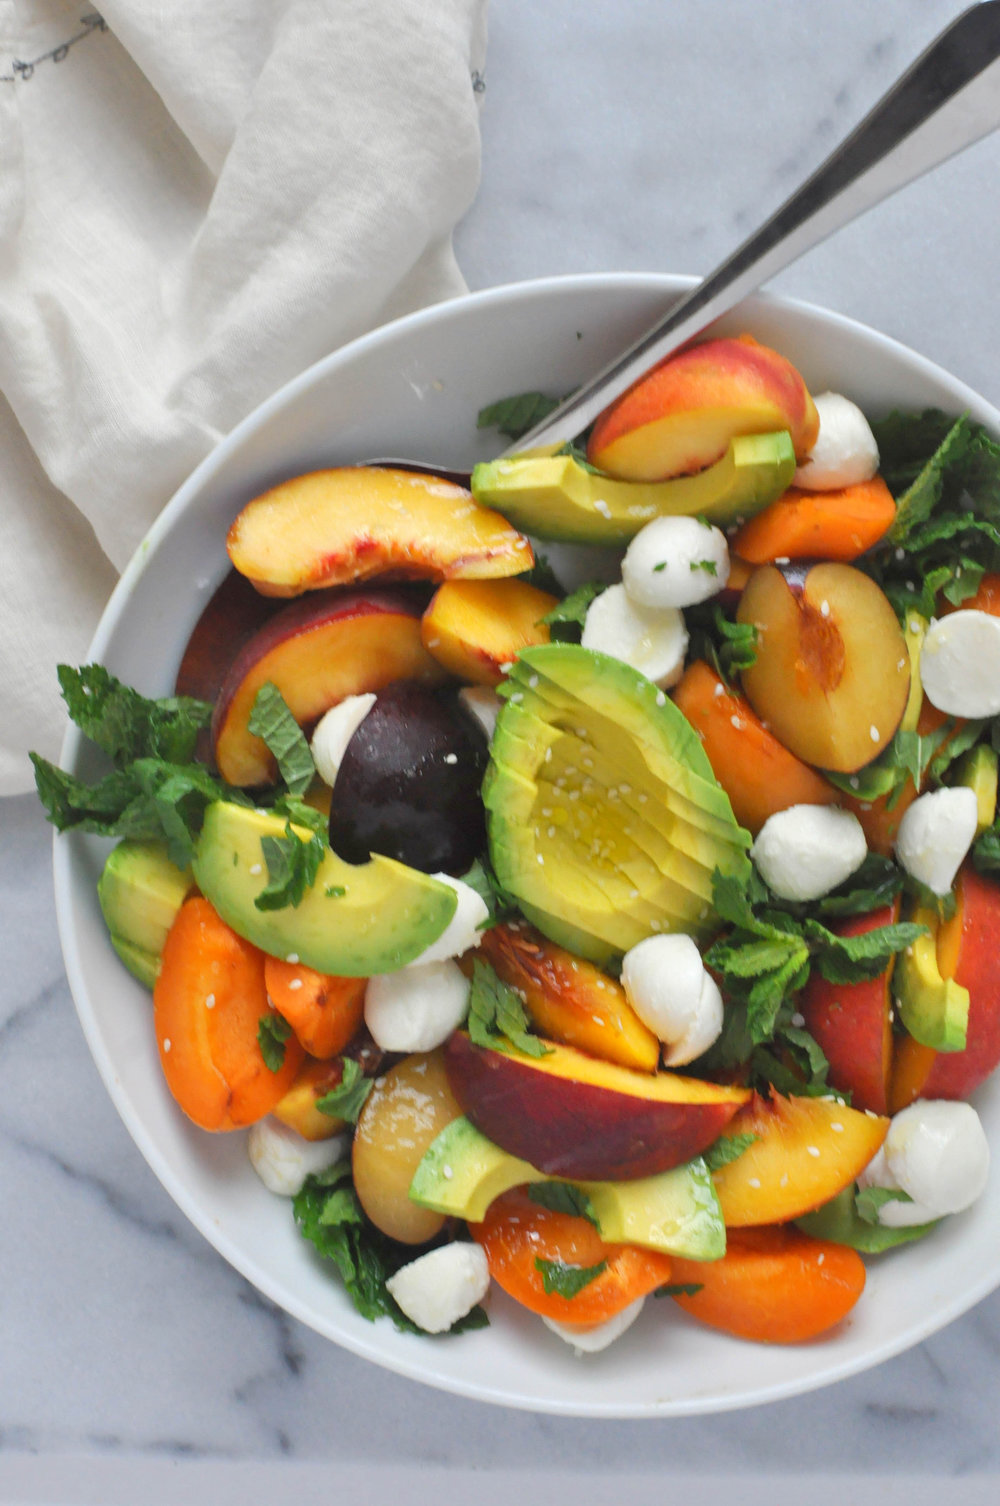 Summer Stone Fruit Salad with peaches, plums, apricots, avocado, and mozzarella - a beautiful celebration of summer produce | Shiny Happy Bright